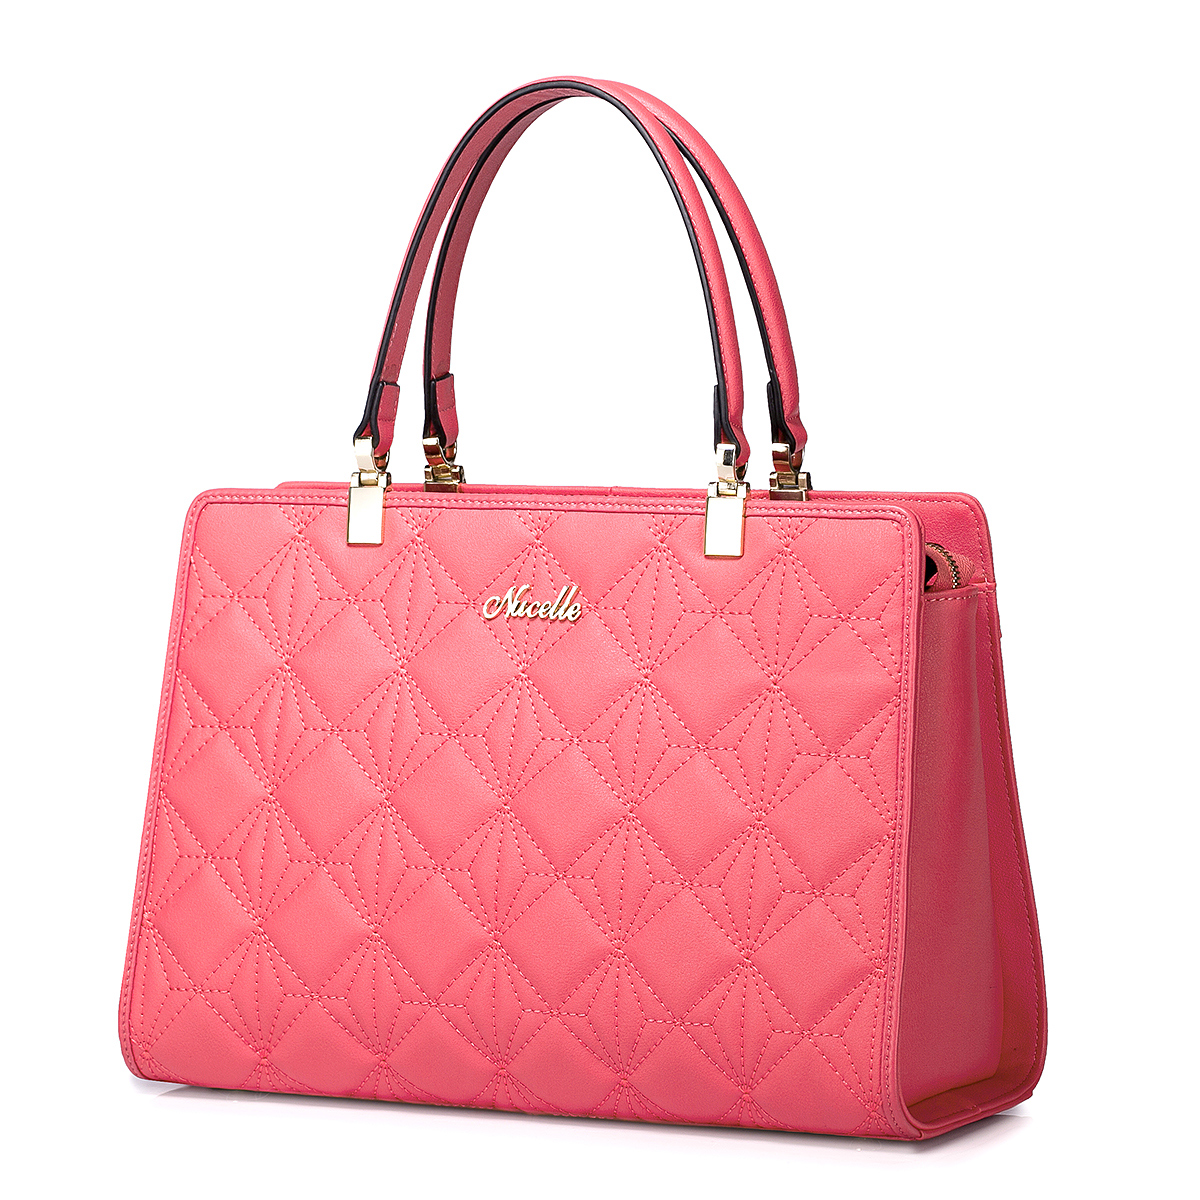 women handbags solid color Genuine leather lady bag Red